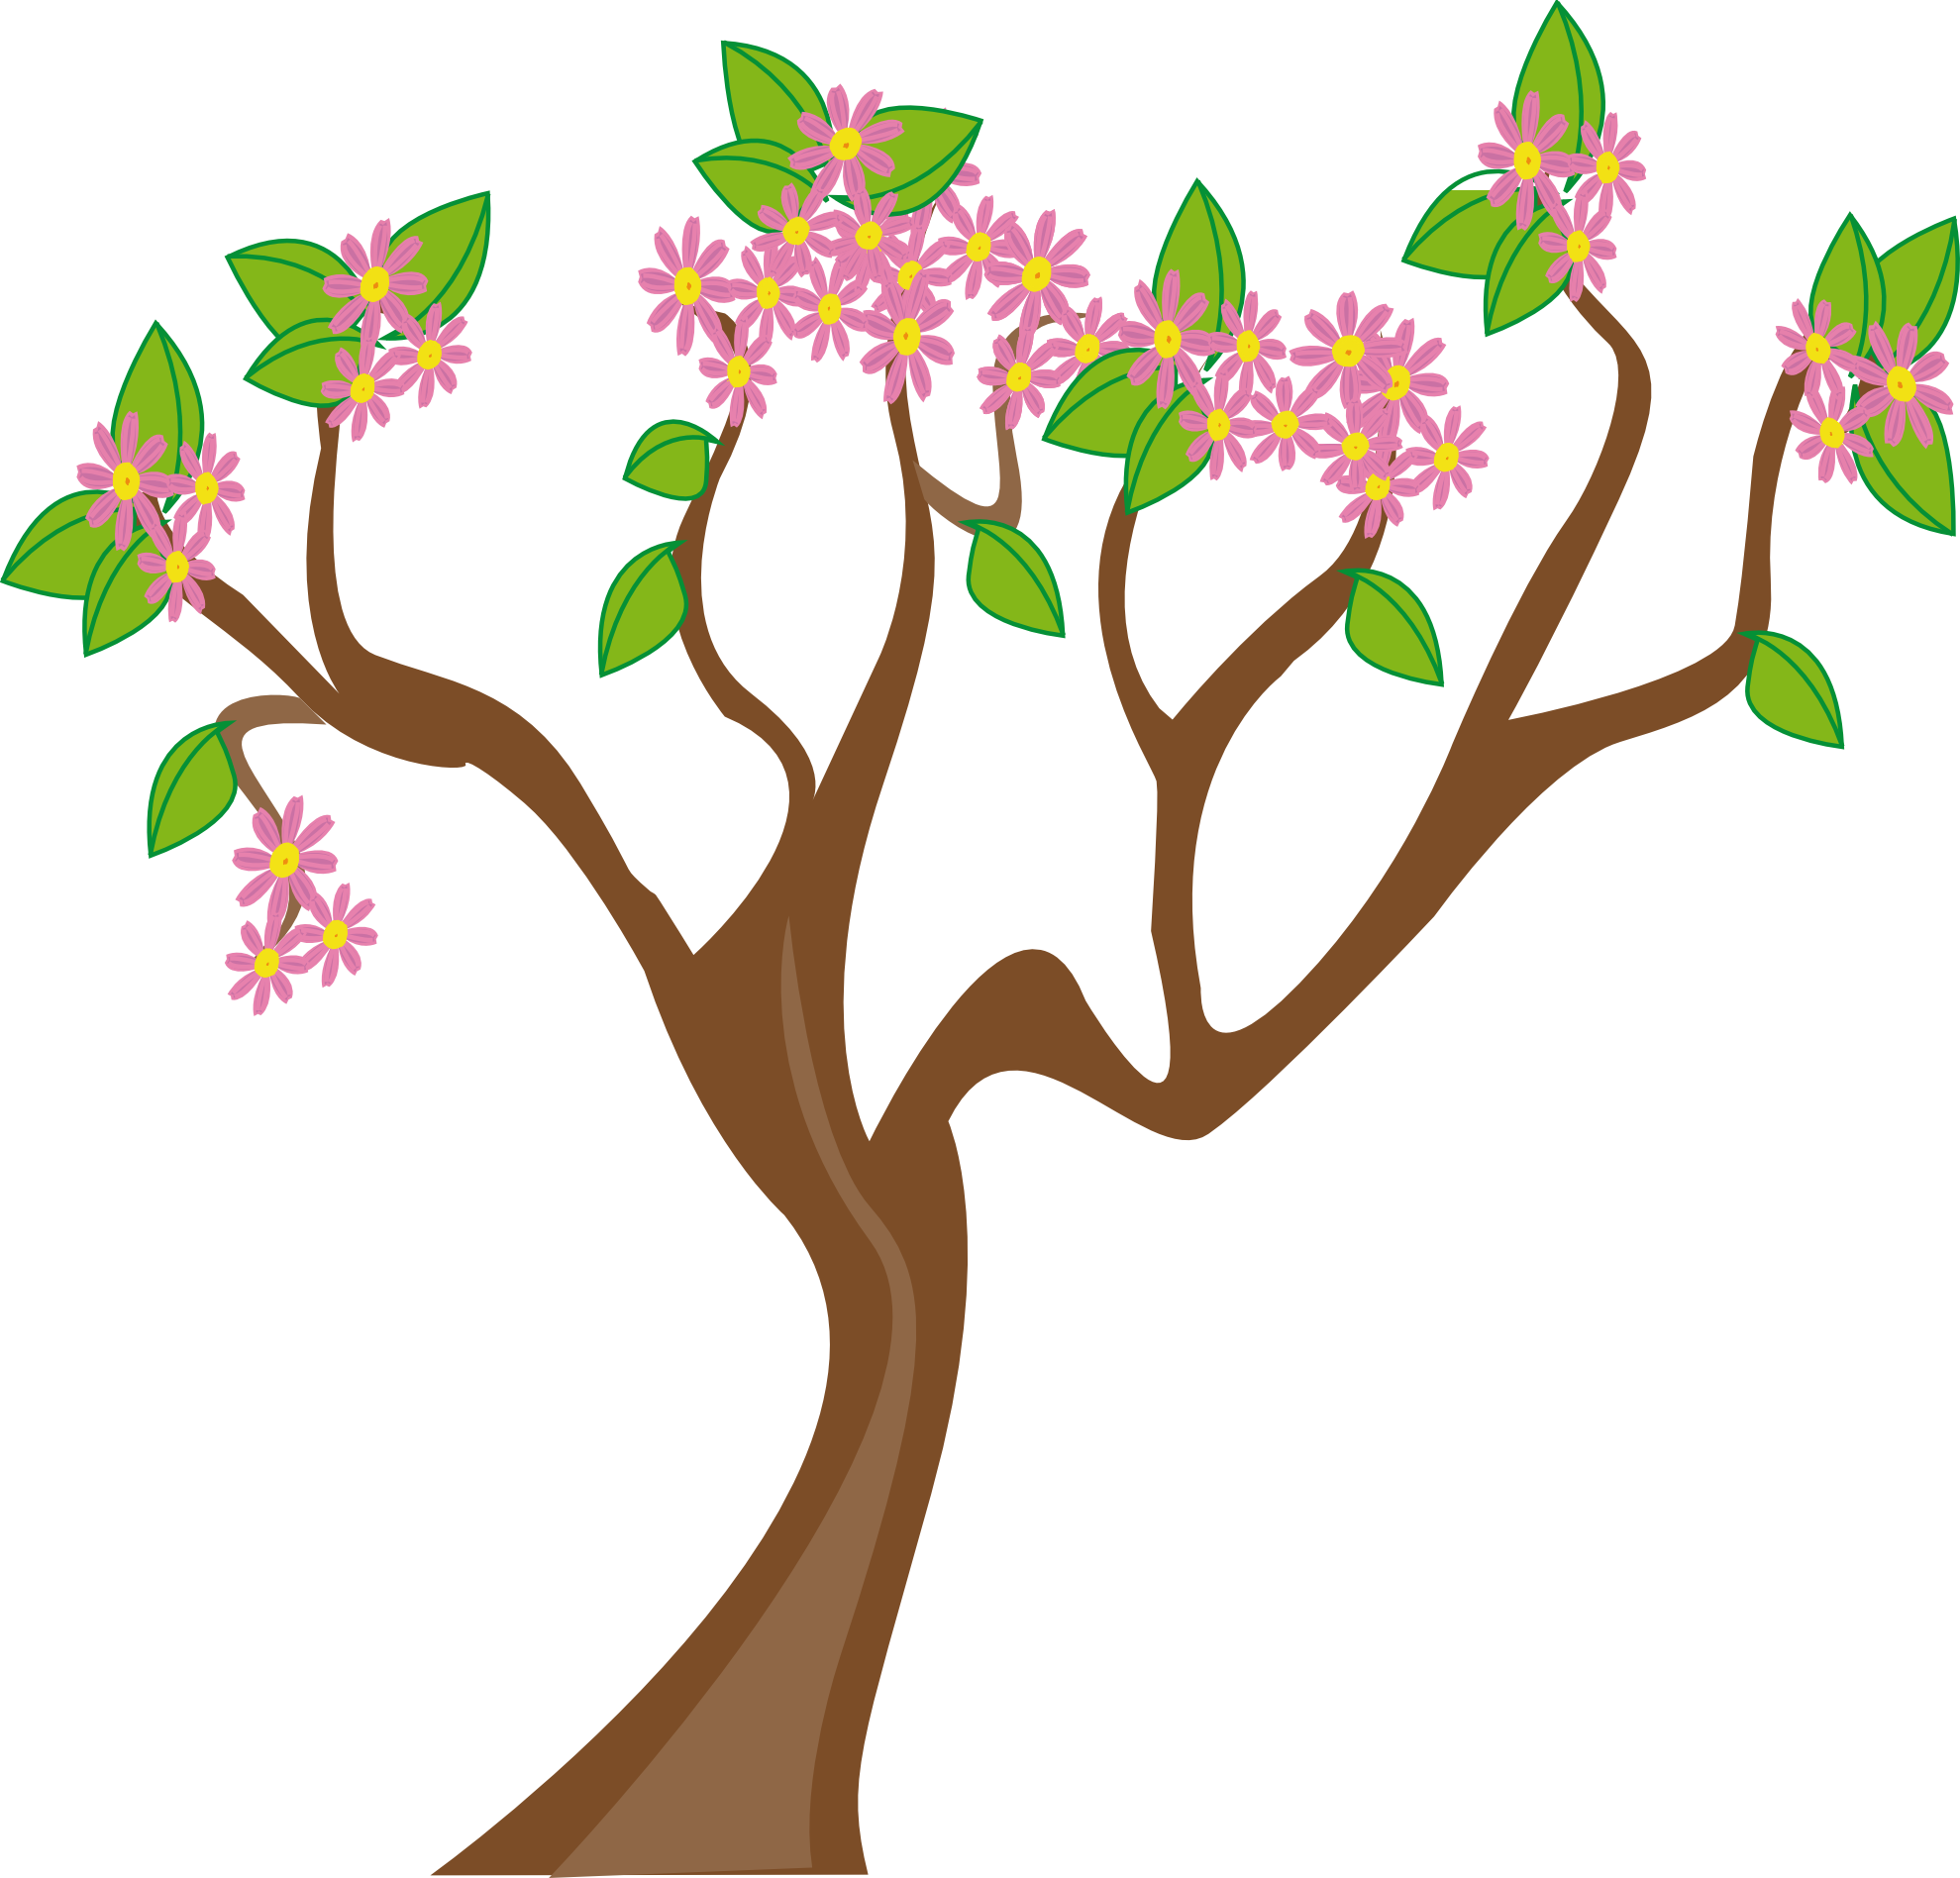 Musical clipart spring. Free graphics download clip